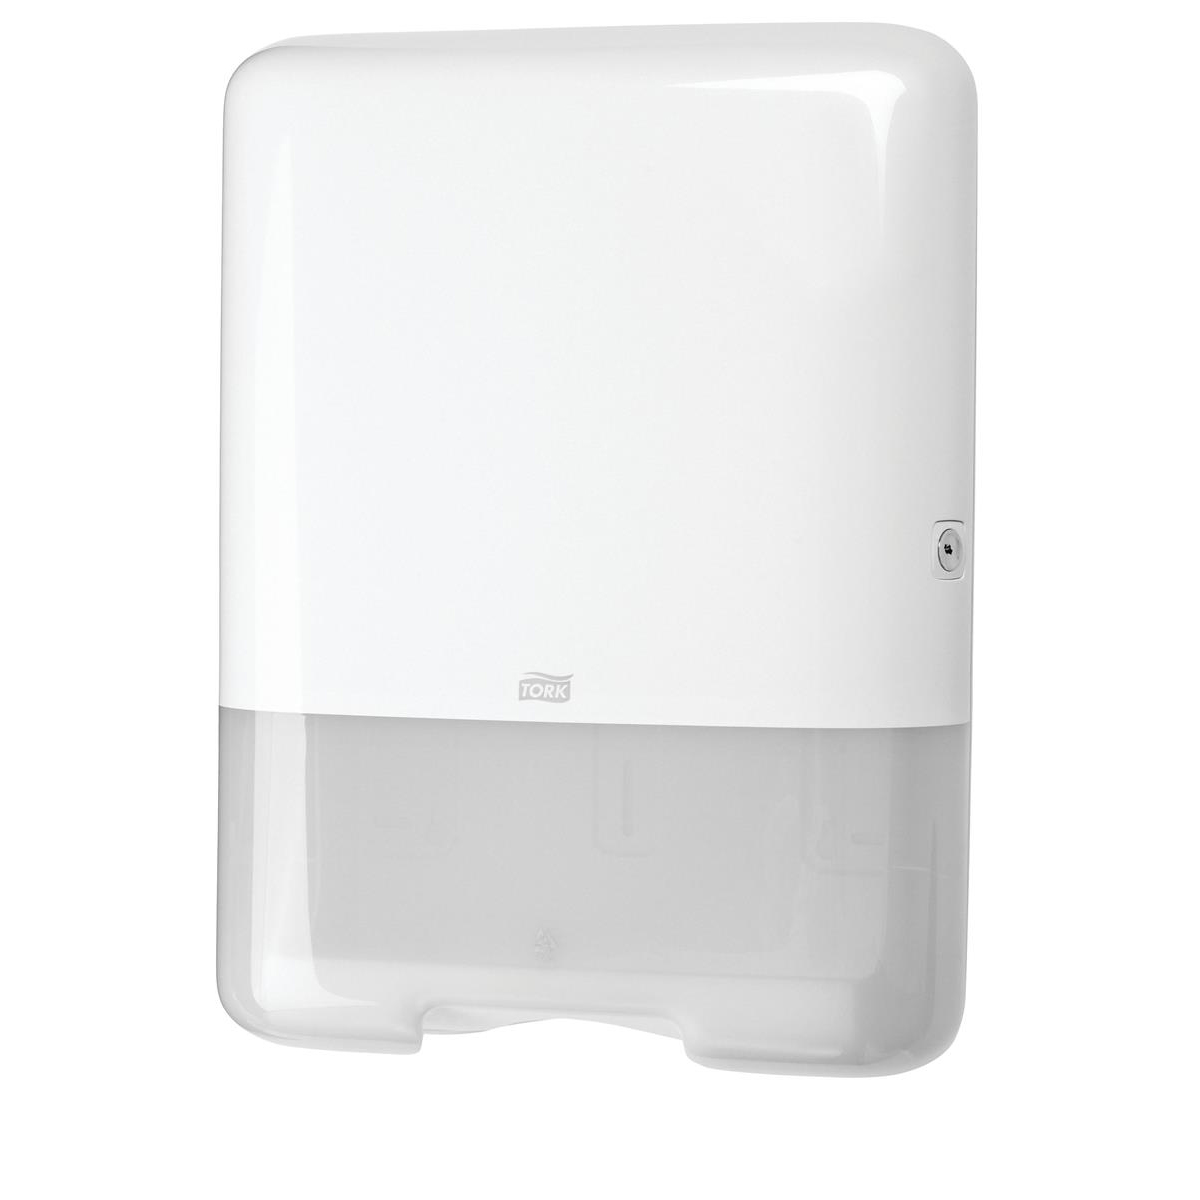 Paper towel dispensers Tork Single Fold C Fold Hand Towel Dispenser W333xD136xH439mm Plastic White Ref 553000